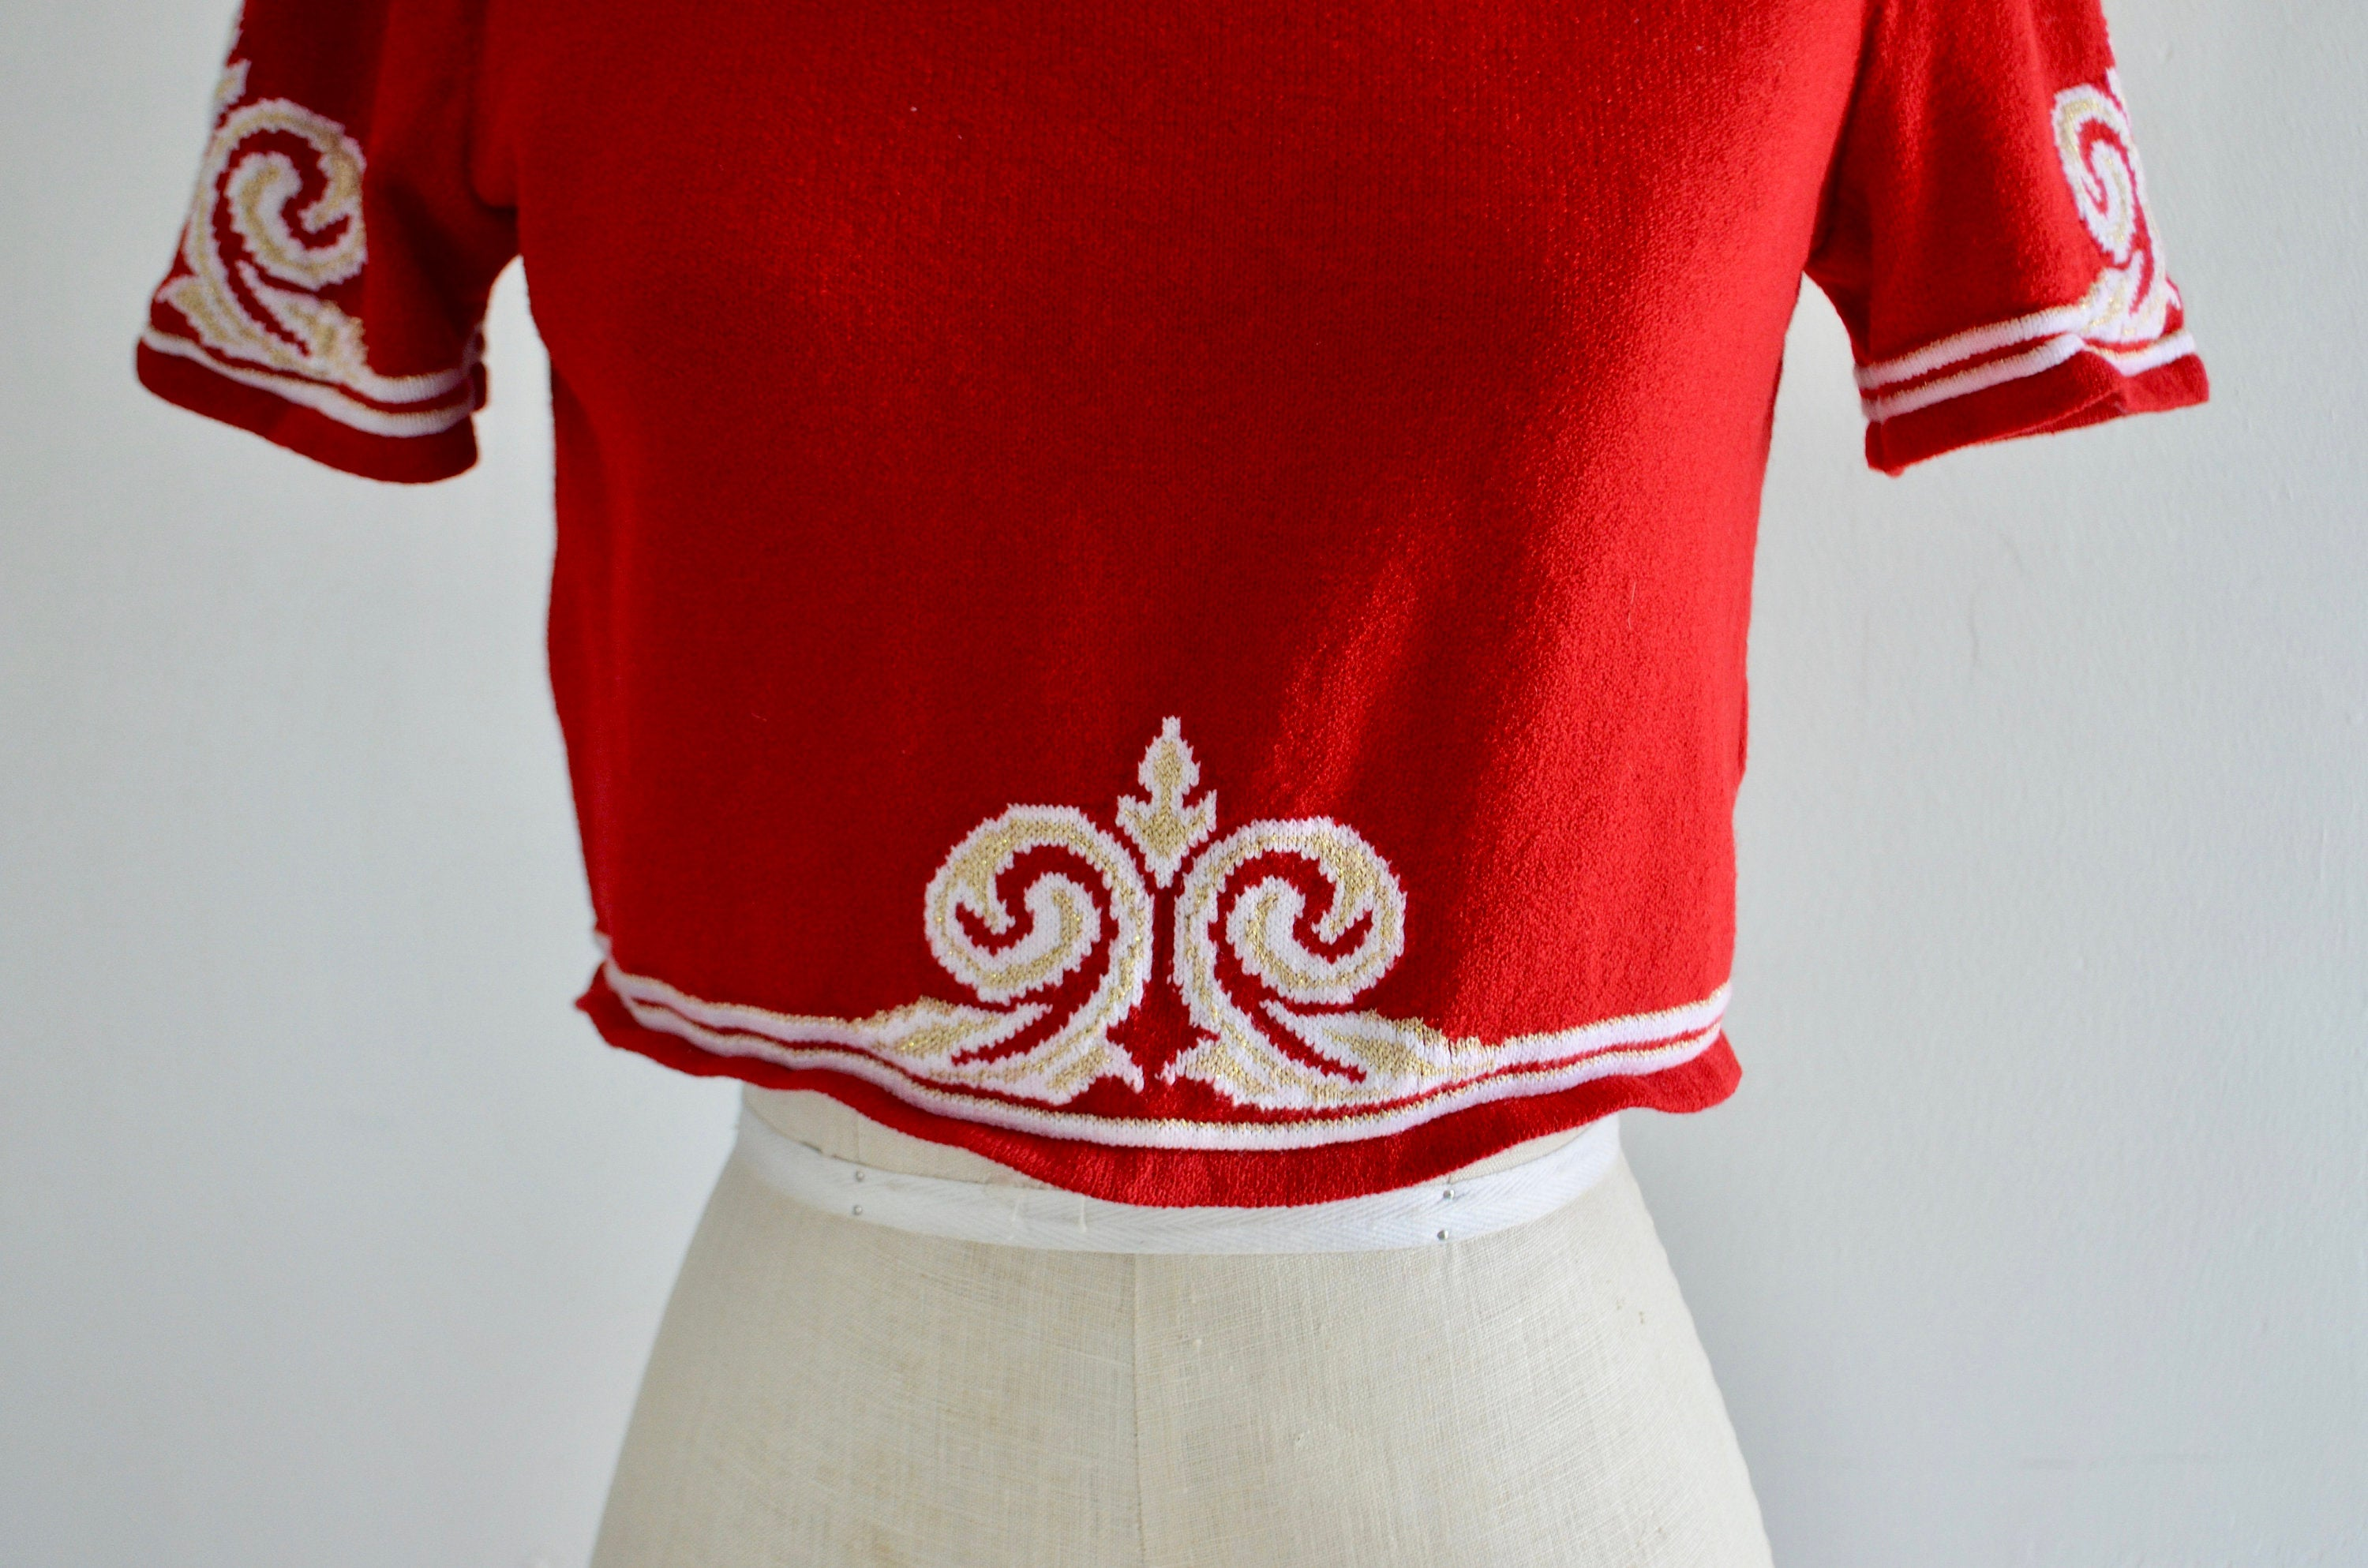 St John Sport Marie Gray Red Rib Knit Cropped Top Luxury Fine Gauge Stripe Neck Gold Fleur De Lis